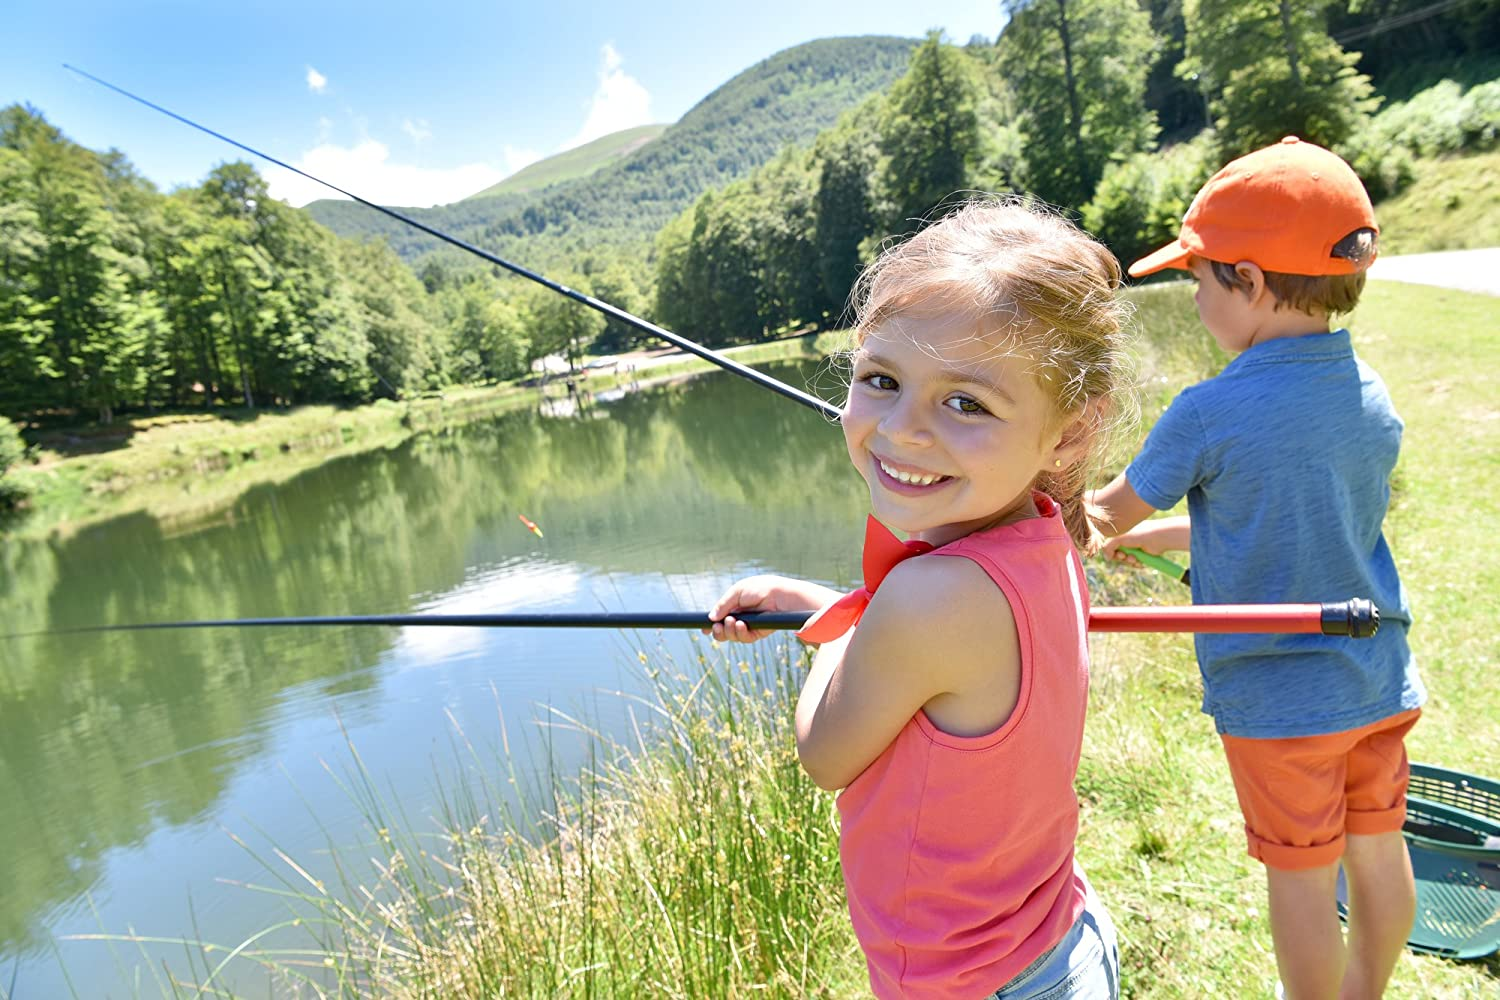 Little girls fishing images galleries for Little girl fishing pole